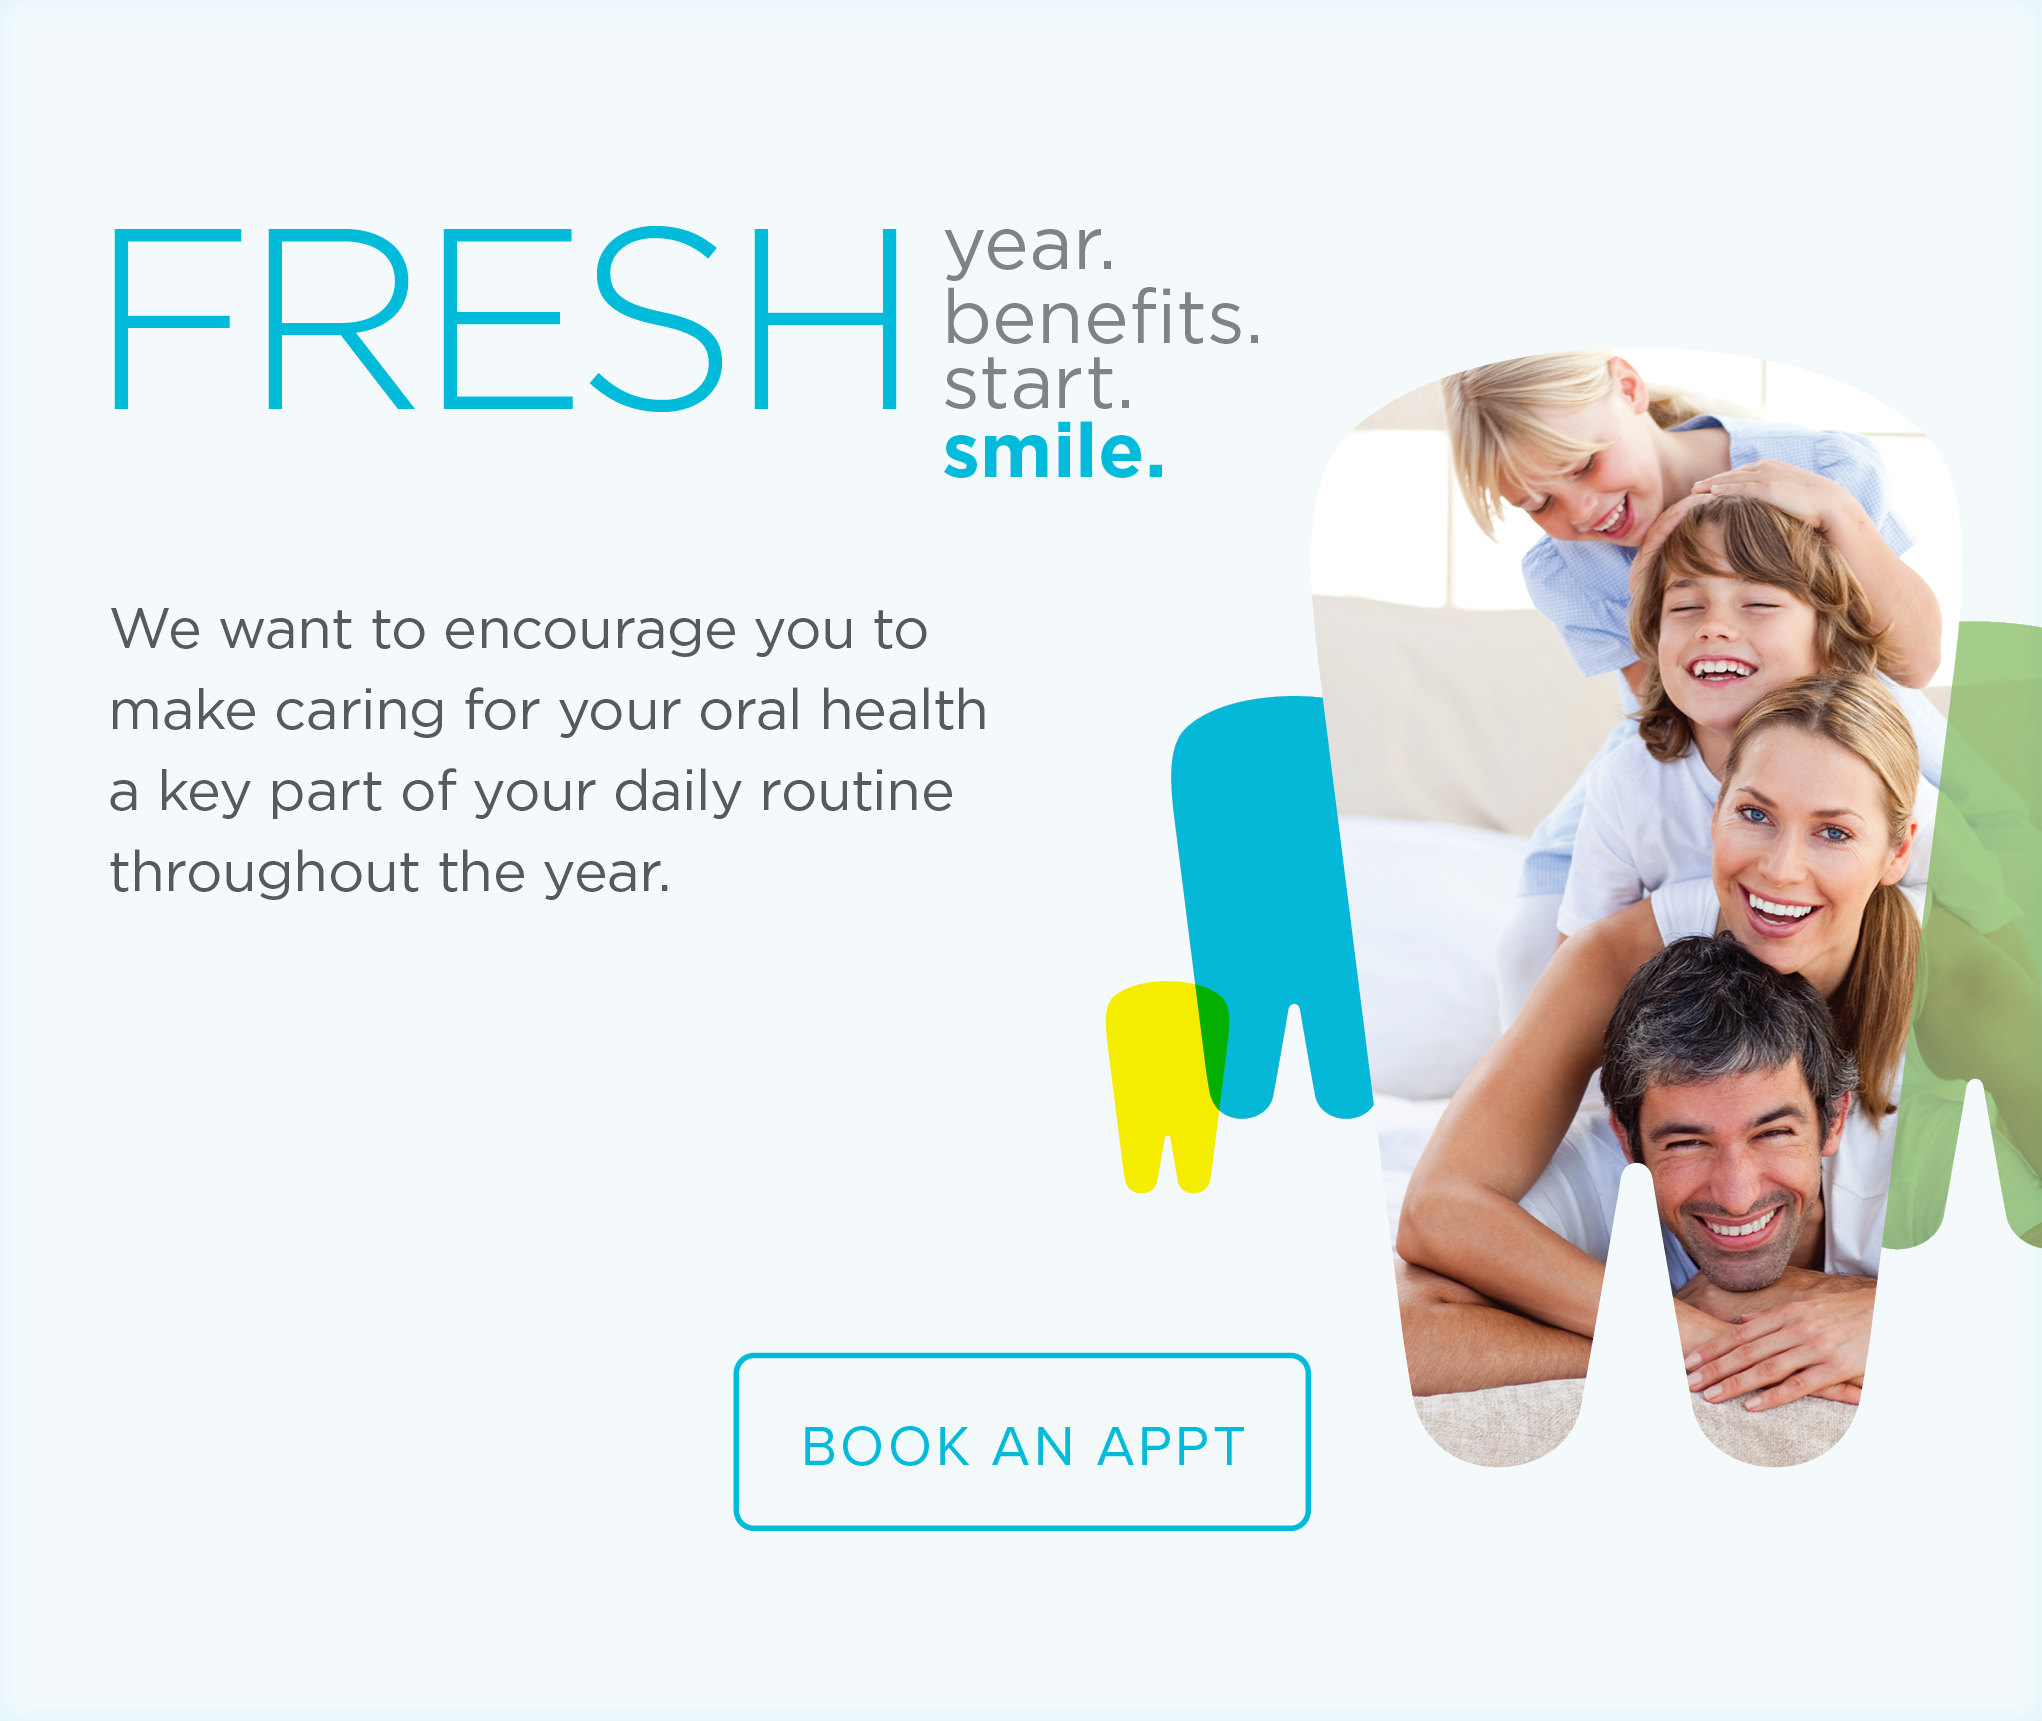 Camarillo Dental Group and Orthodontics - Make the Most of Your Benefits